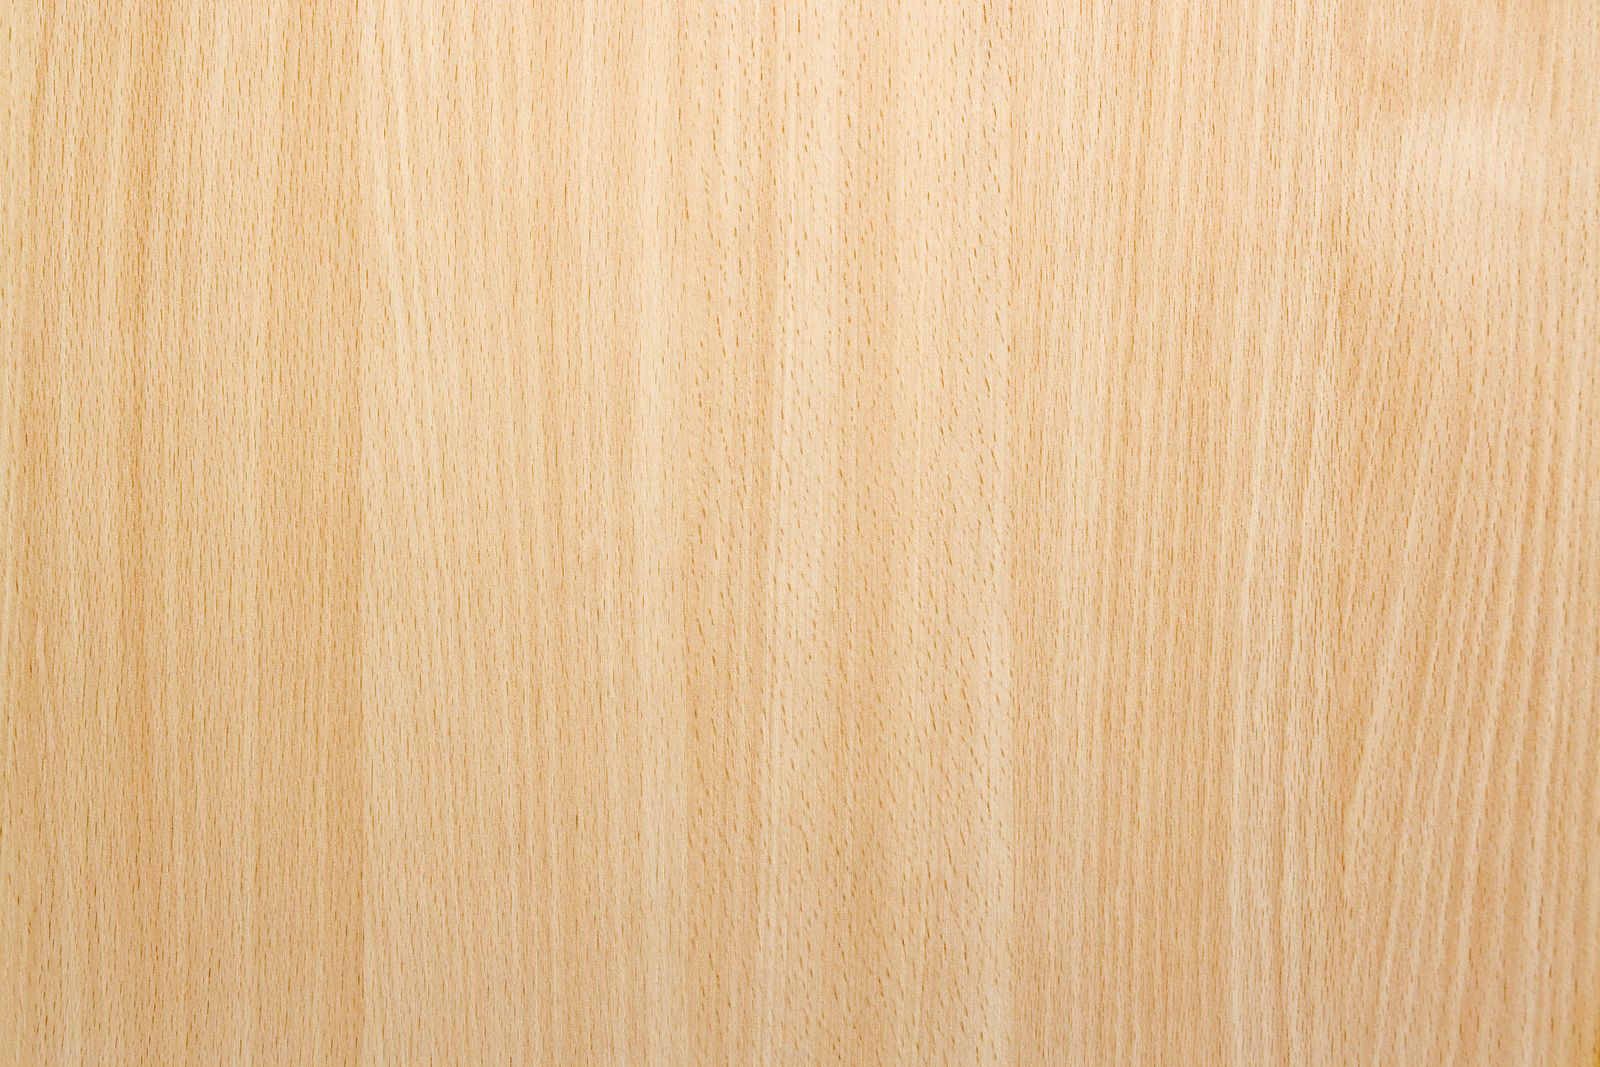 Wood furniture texture - How To Pick Quality Wood In Furniture